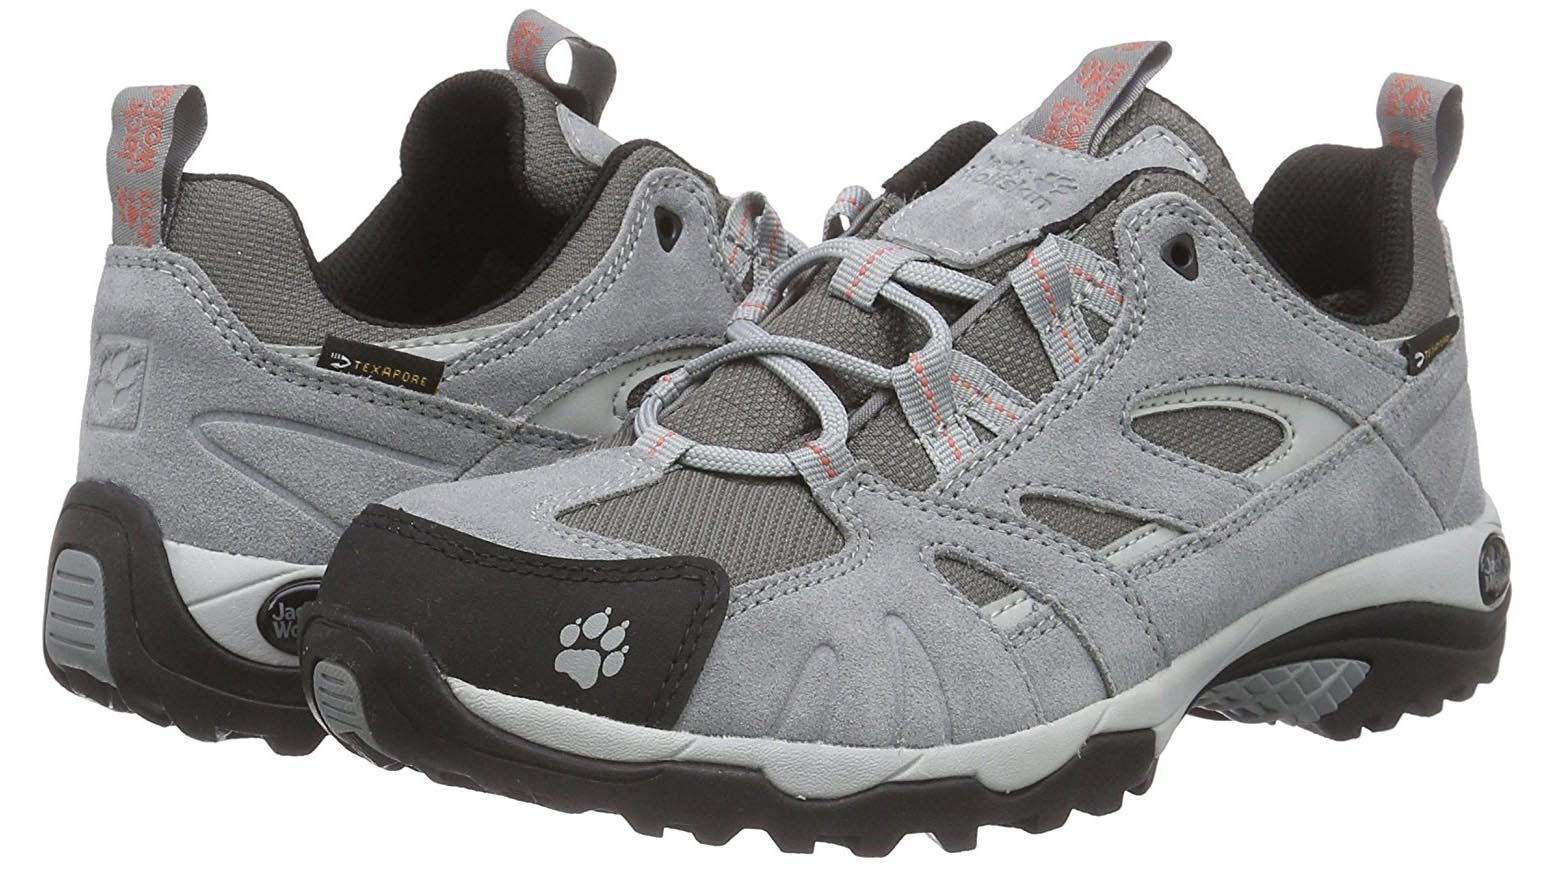 efaf13cf37e walking shoes jack wolfskin womens vojo texapore low .jpg itok 1K1ffYjK